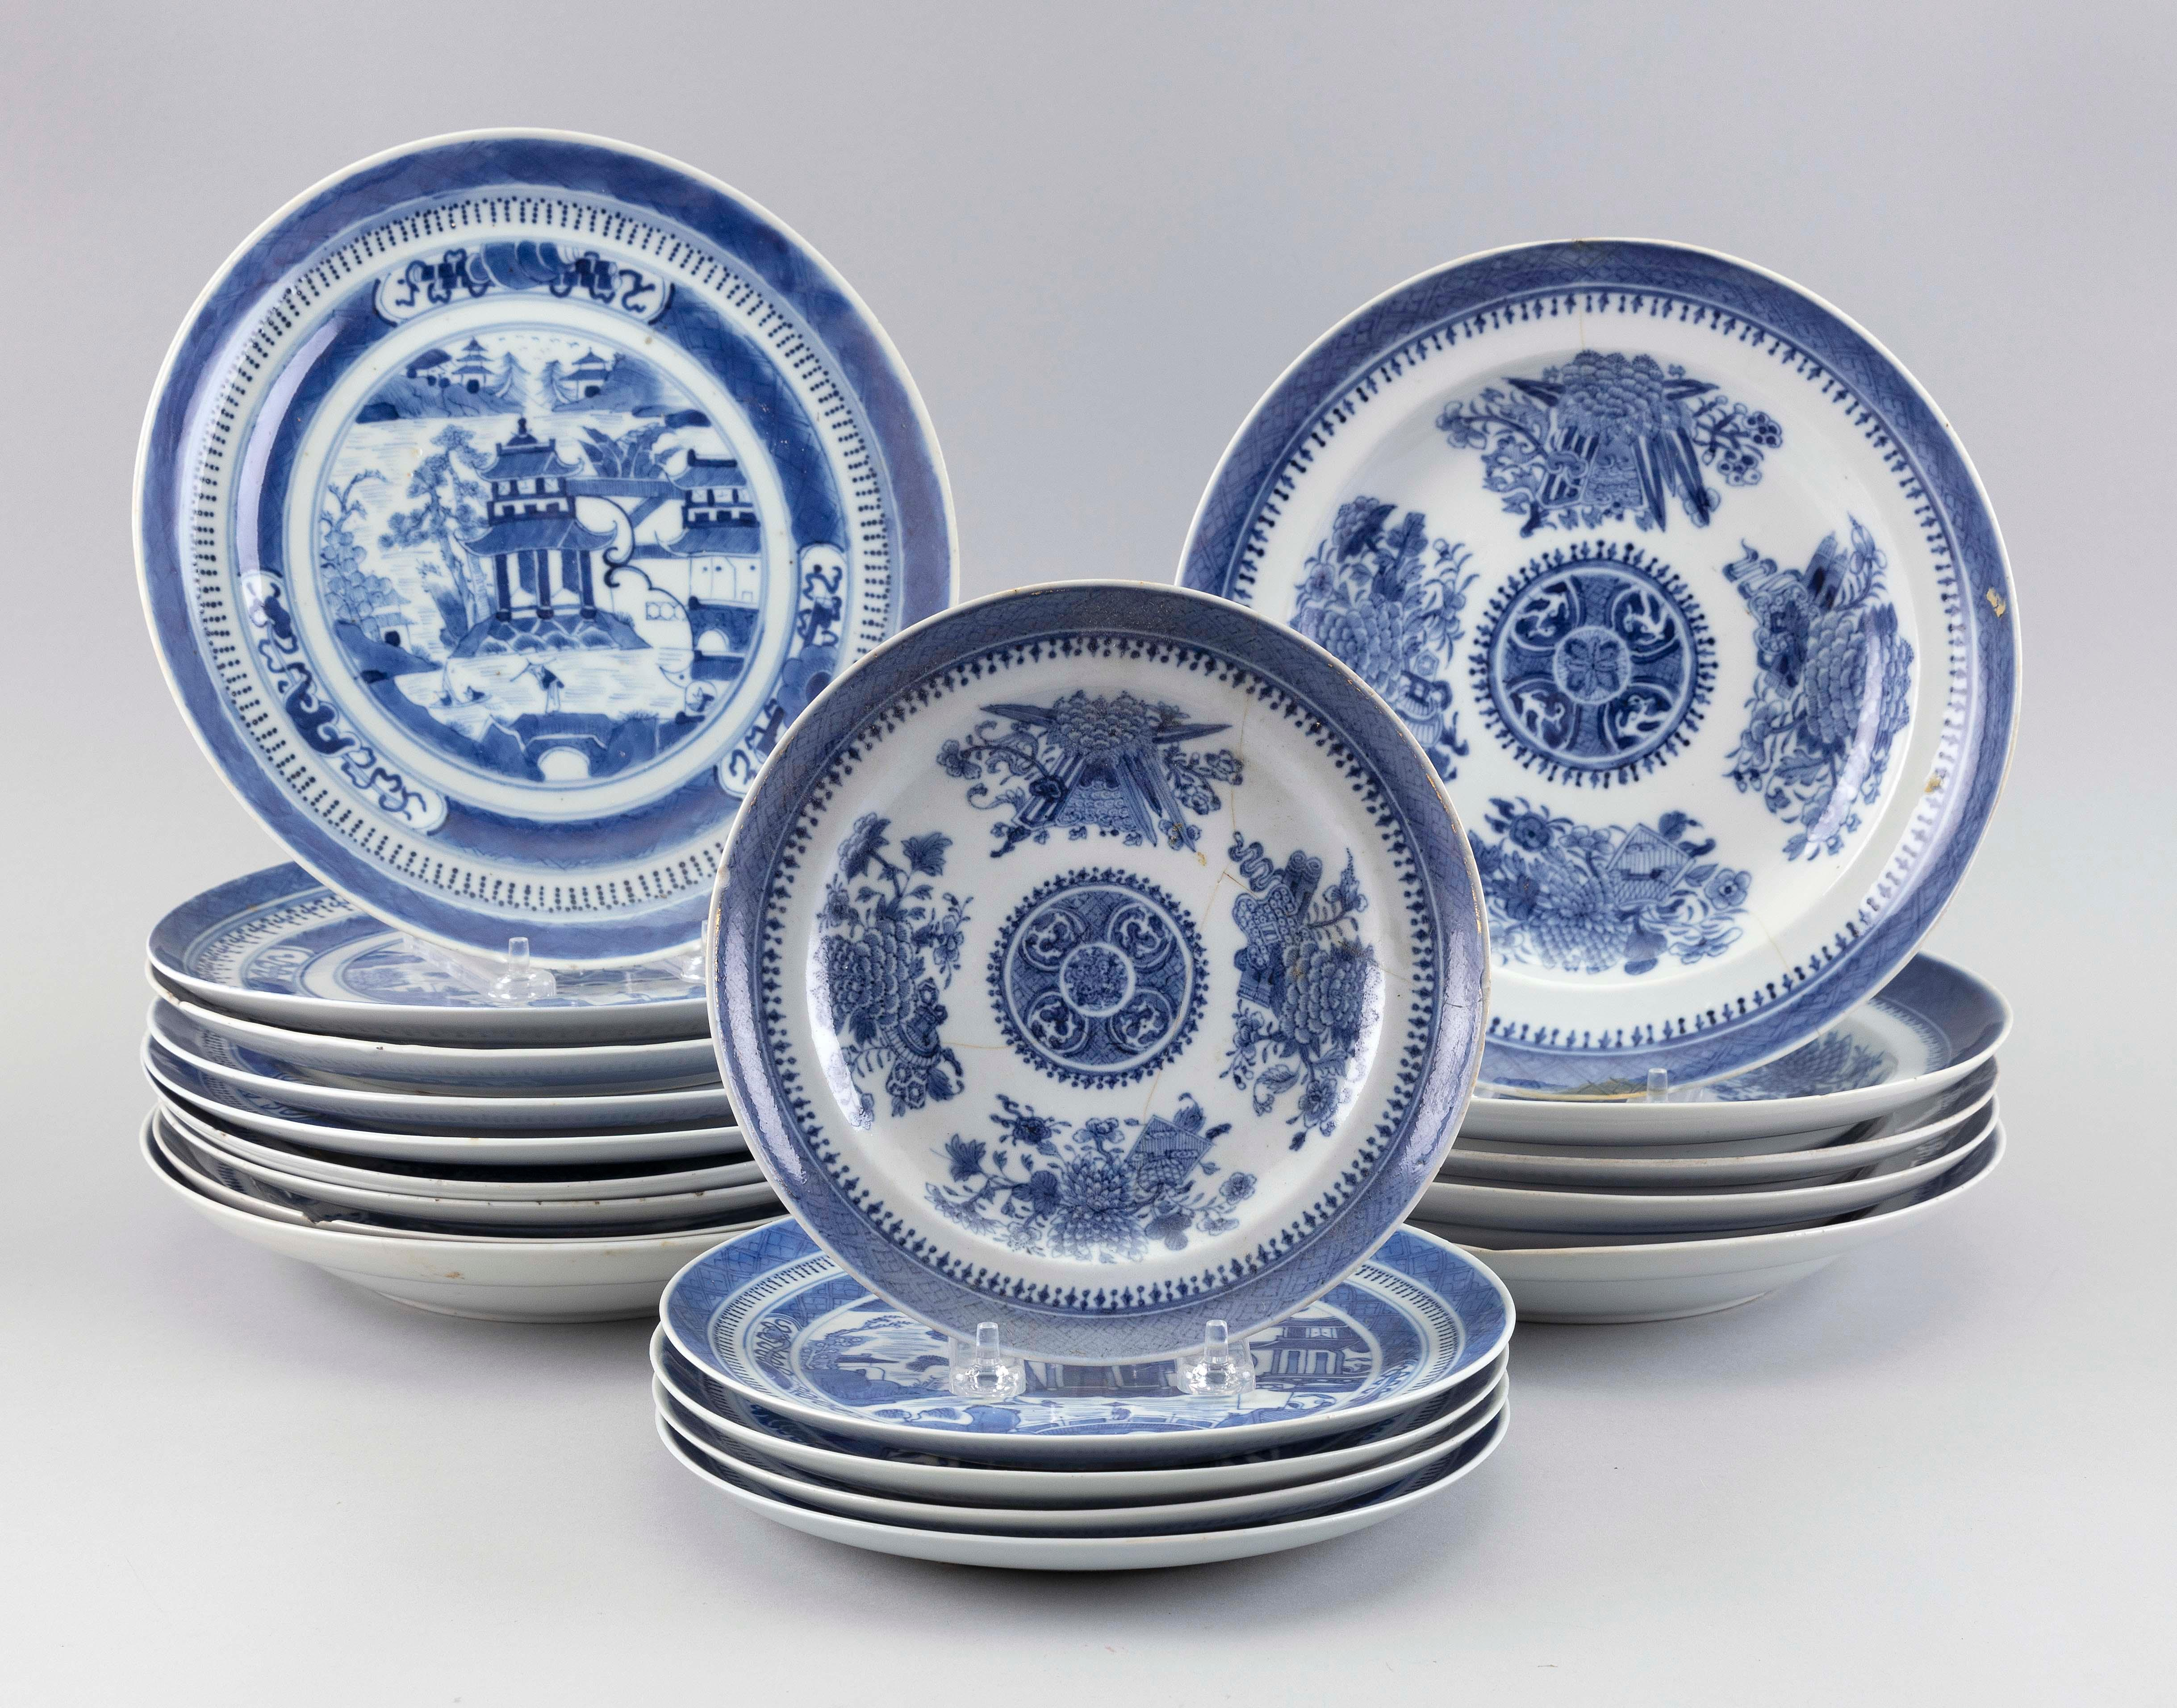 NINETEEN CHINESE EXPORT BLUE AND WHITE PORCELAIN PLATES AND DISHES 19th Century